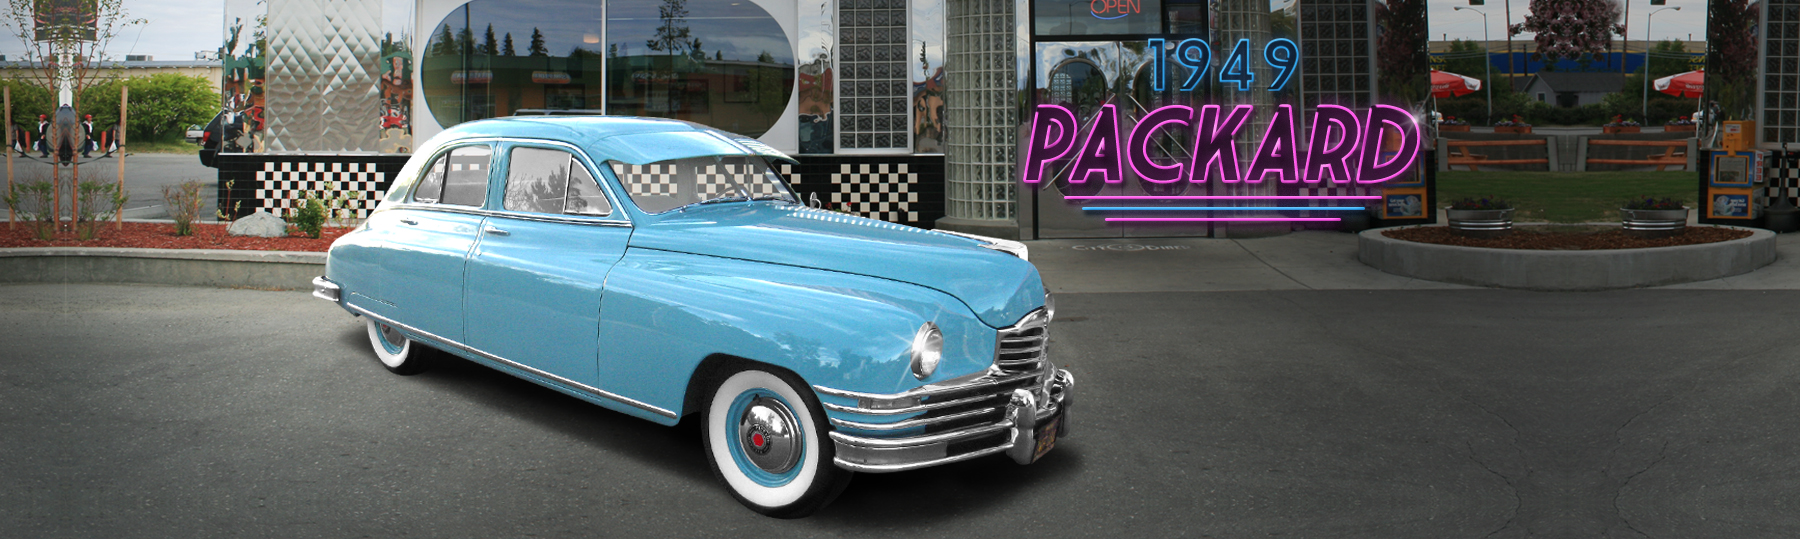 Fineline-49-Packard-header-1